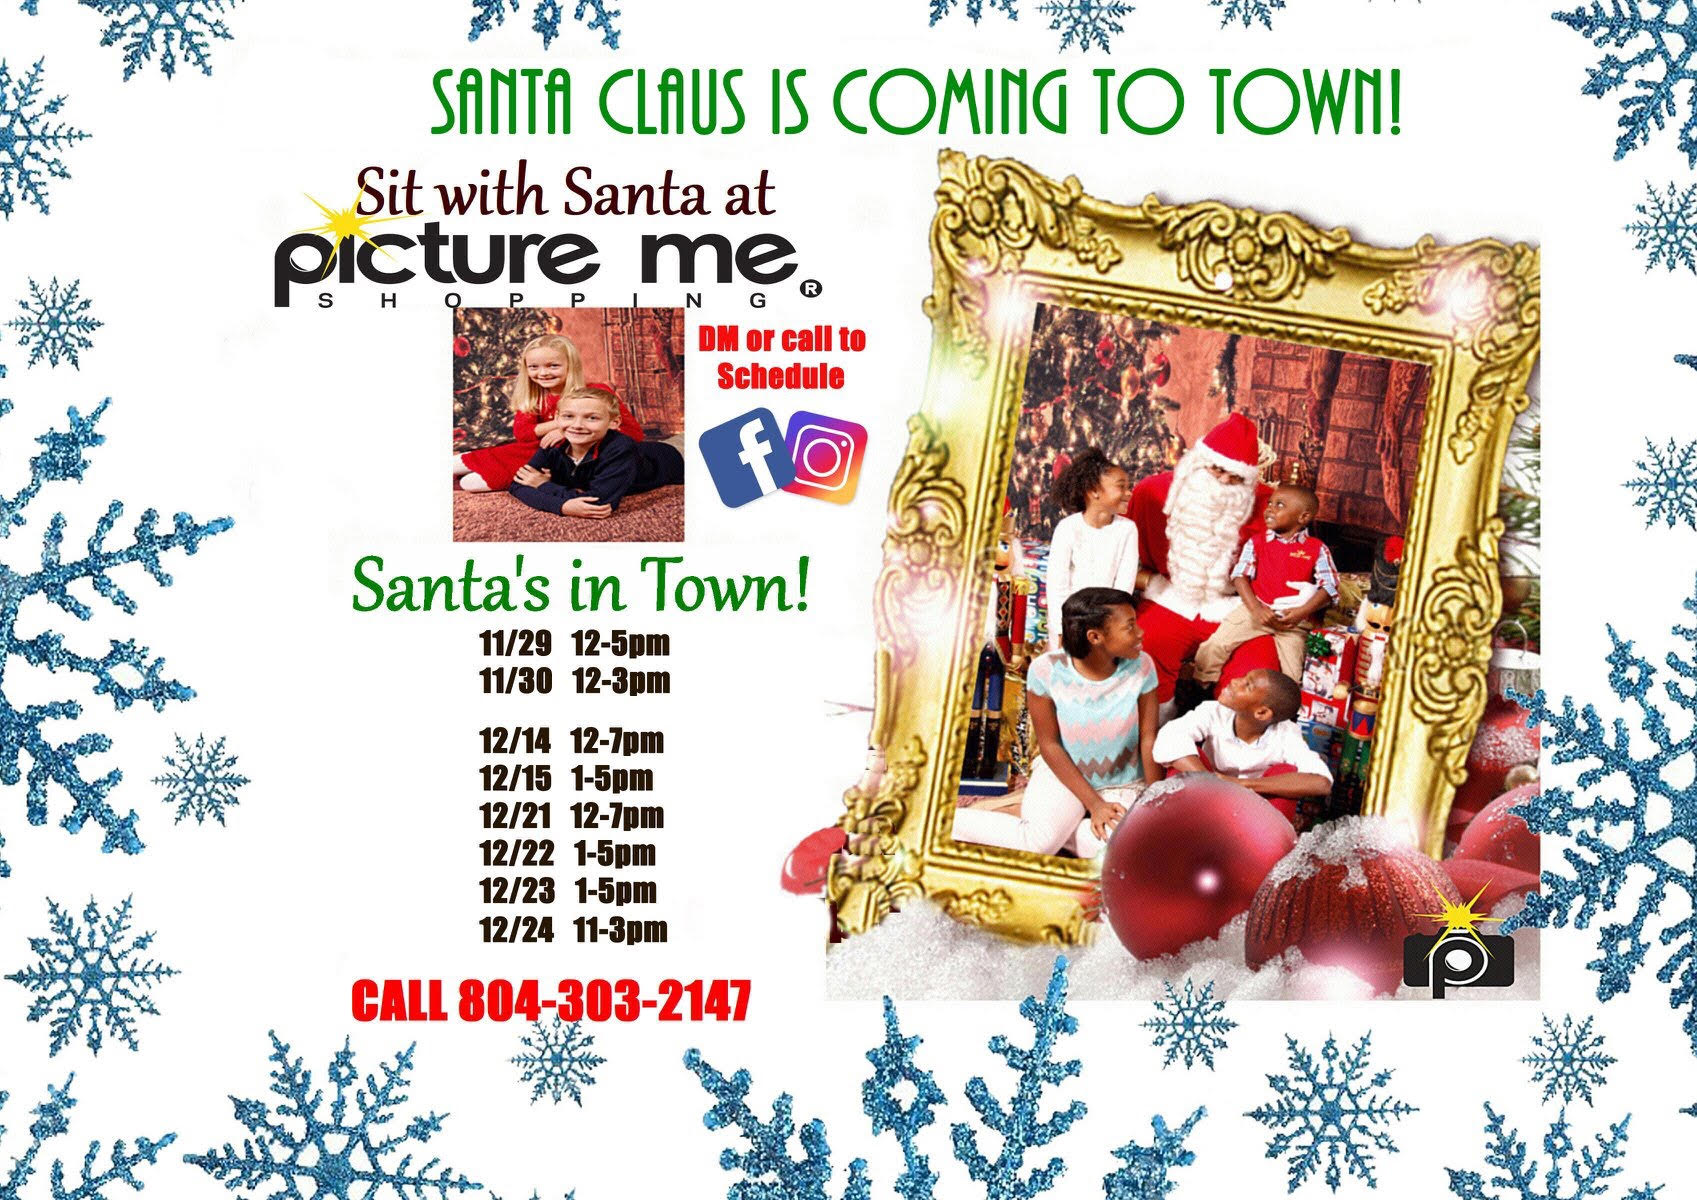 children taking photos with santa at Picture me studios